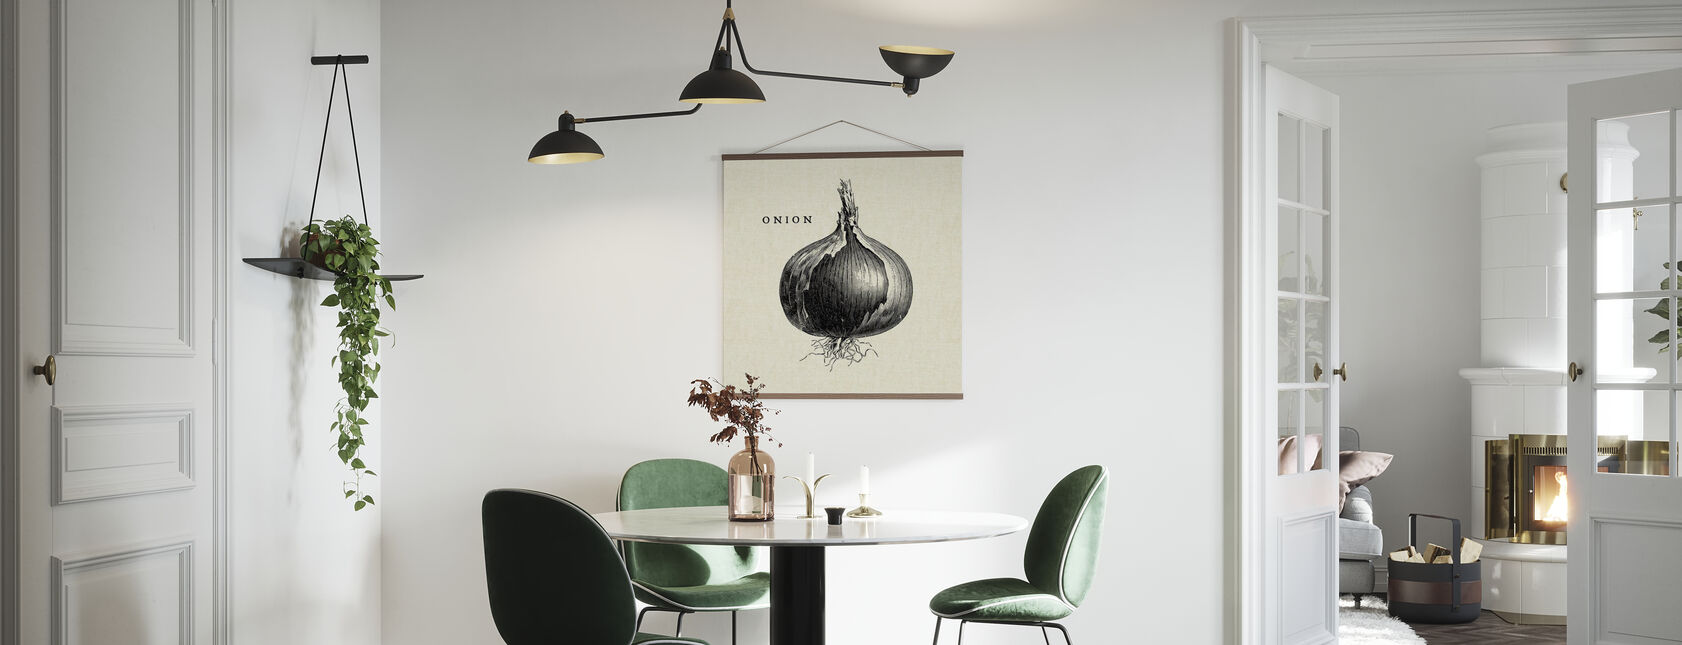 Kitchen Illustration - Onion - Poster - Kitchen